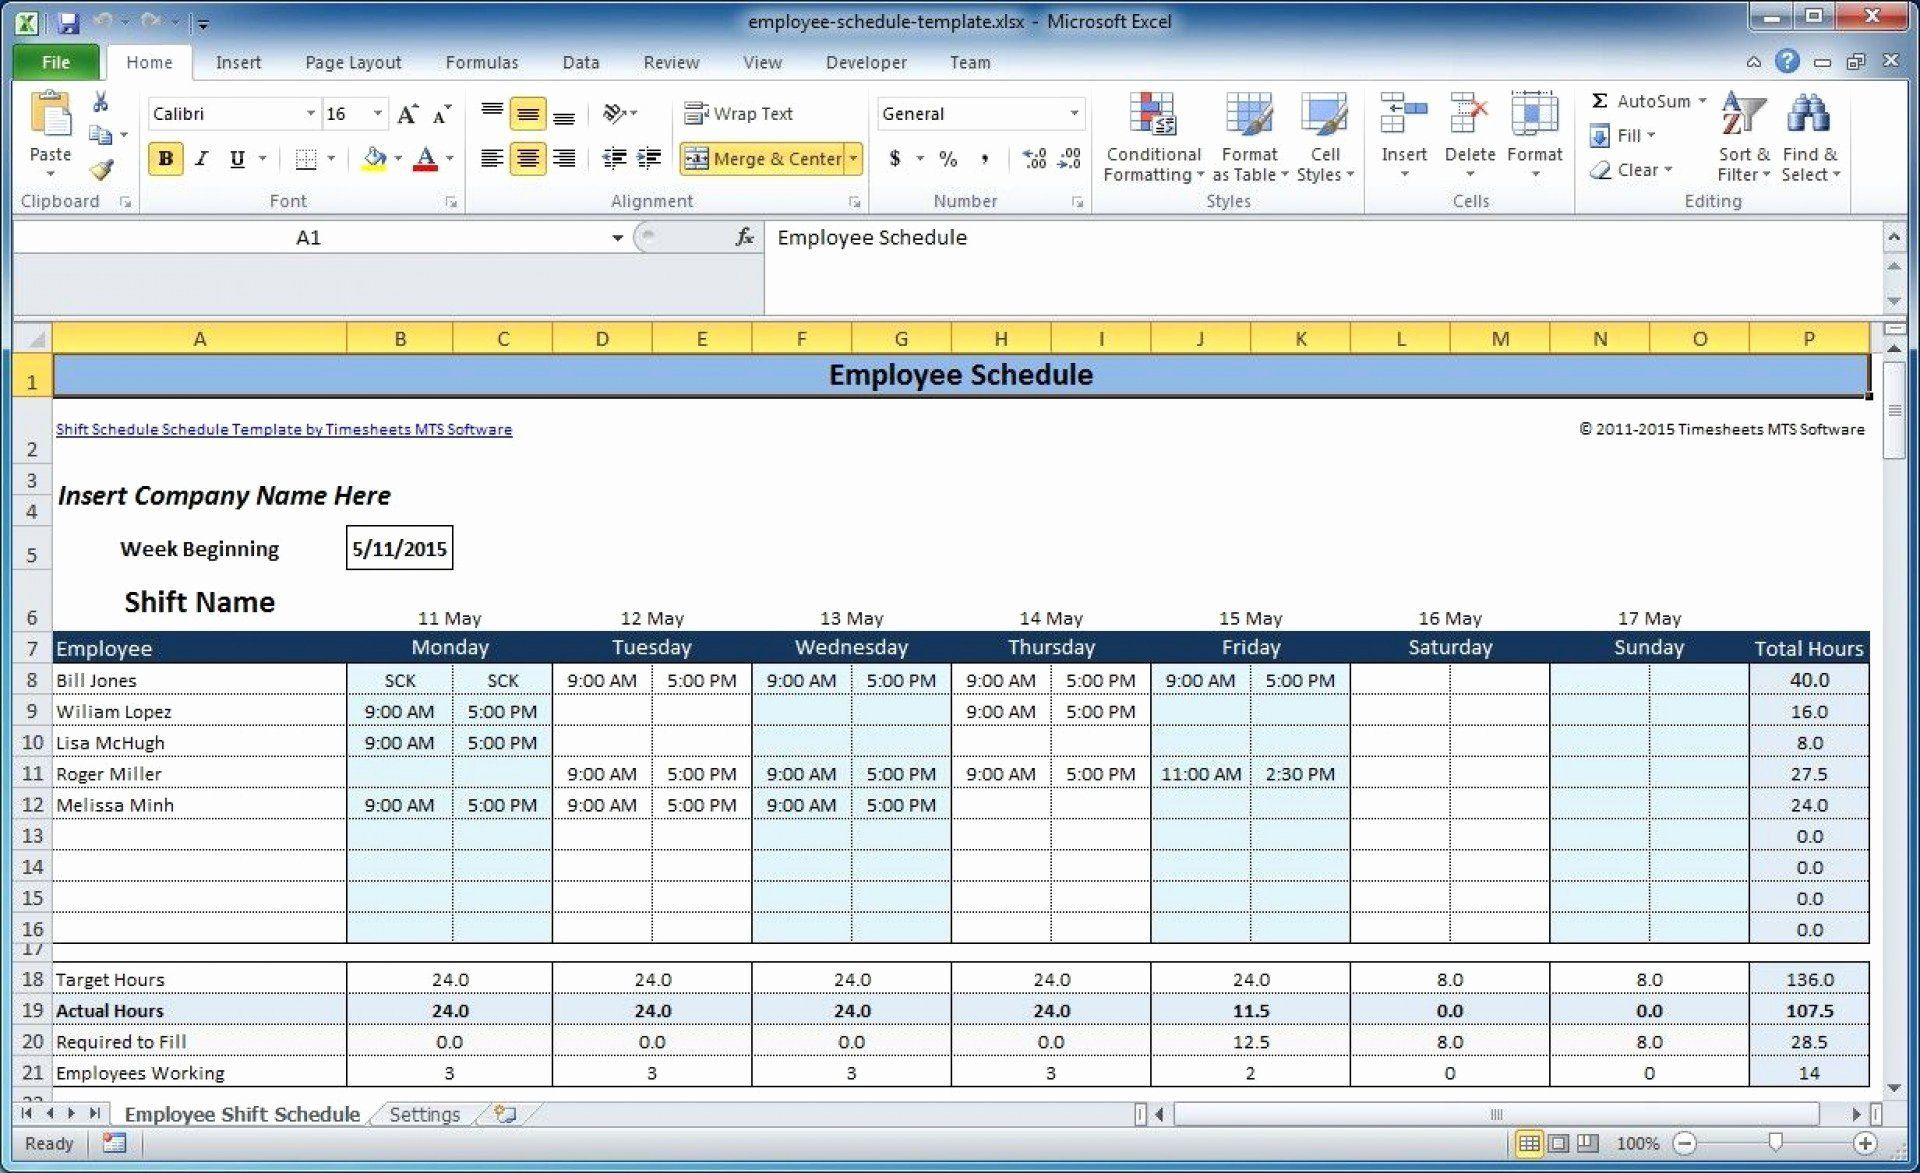 000 Excellent Free Excel Monthly Employee Schedule Template Image  DownloadFull